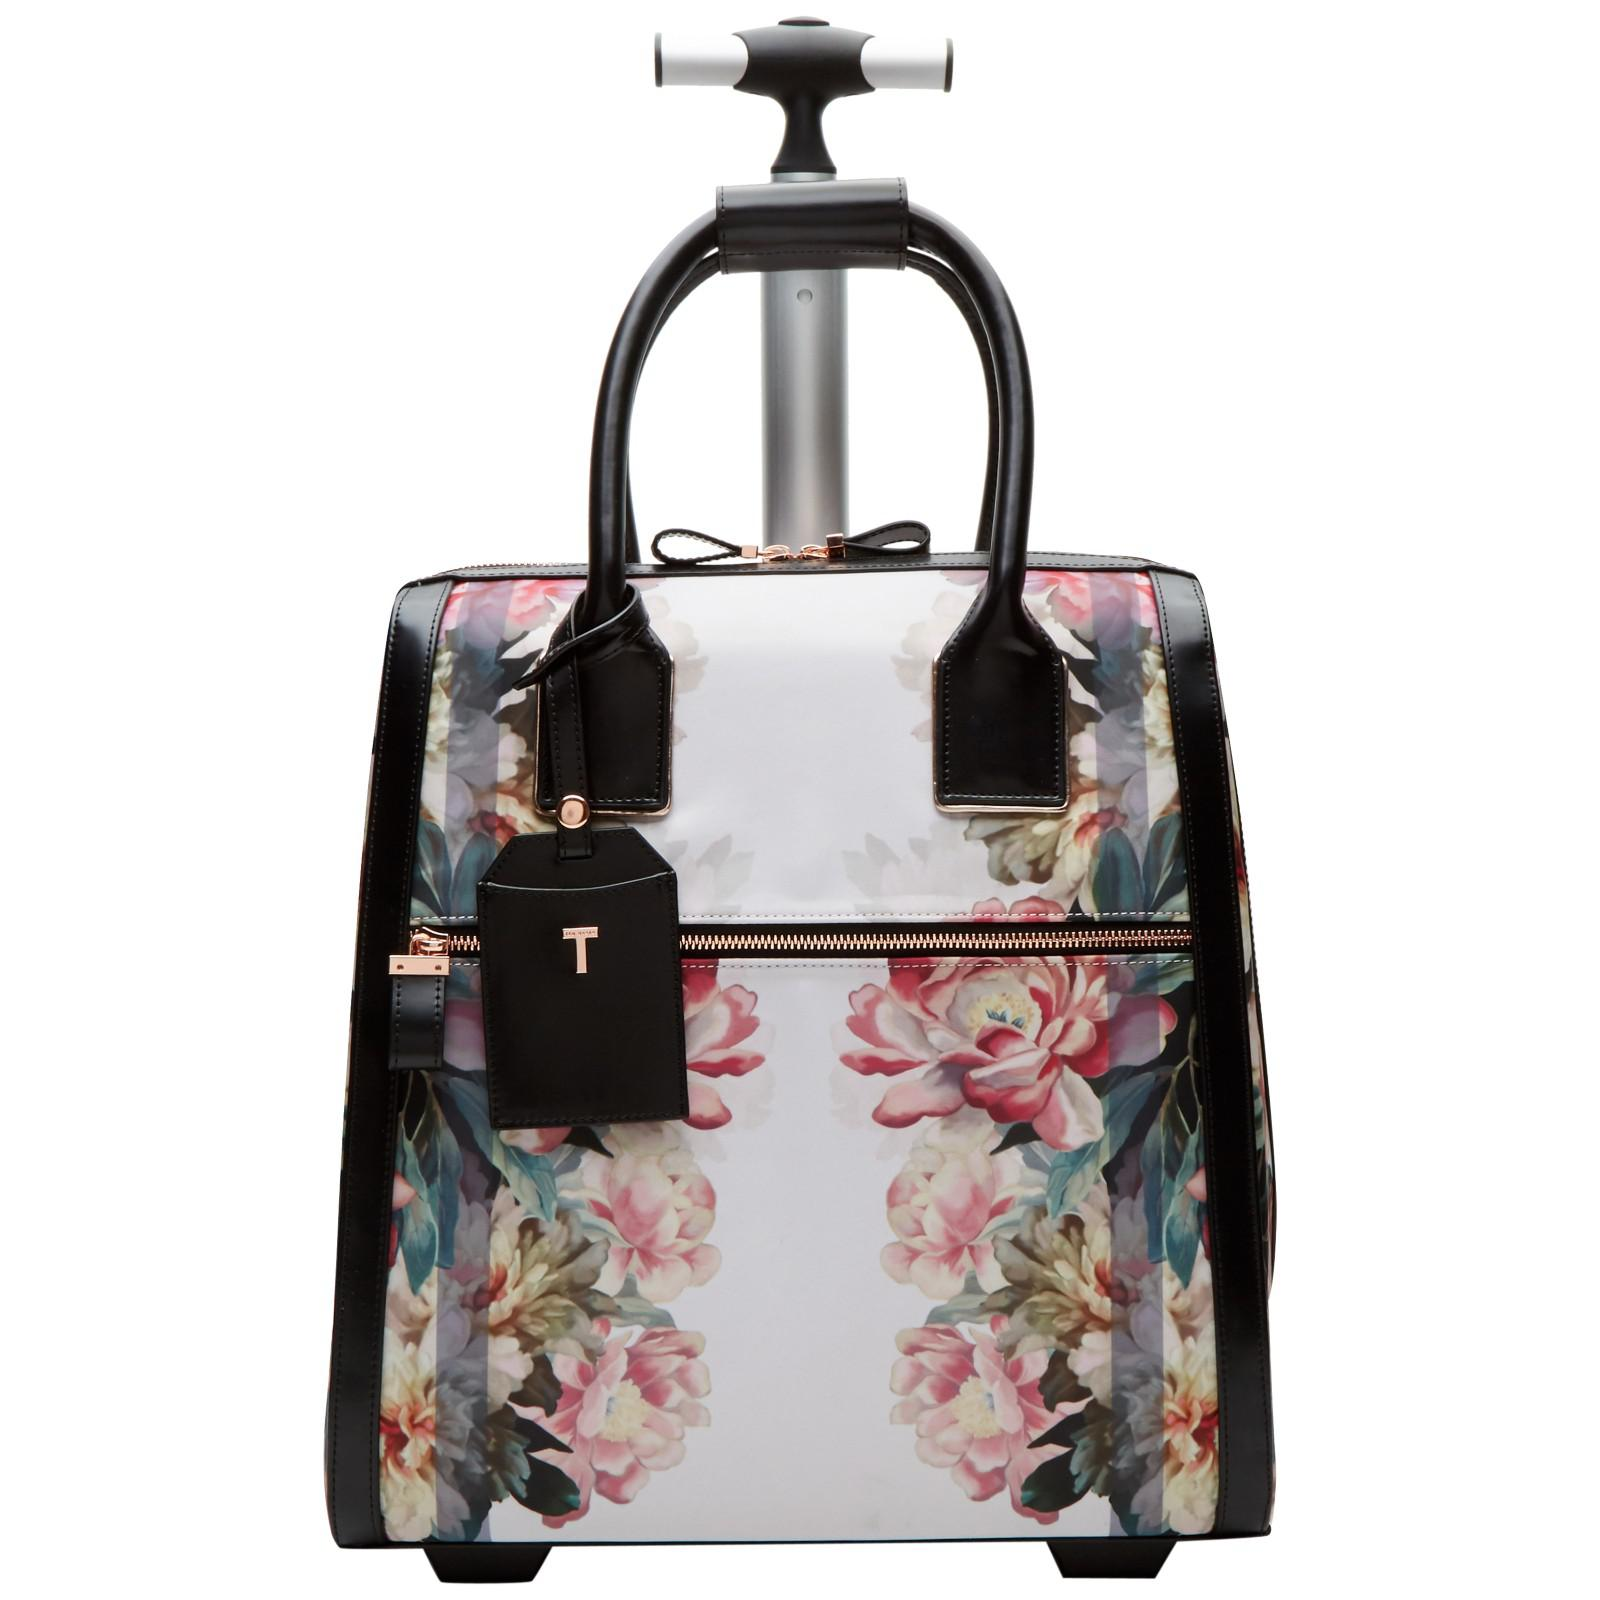 28242e7ff3871 Ted Baker - Multicolor Naoimie Painted Posie Travel Bag - Lyst